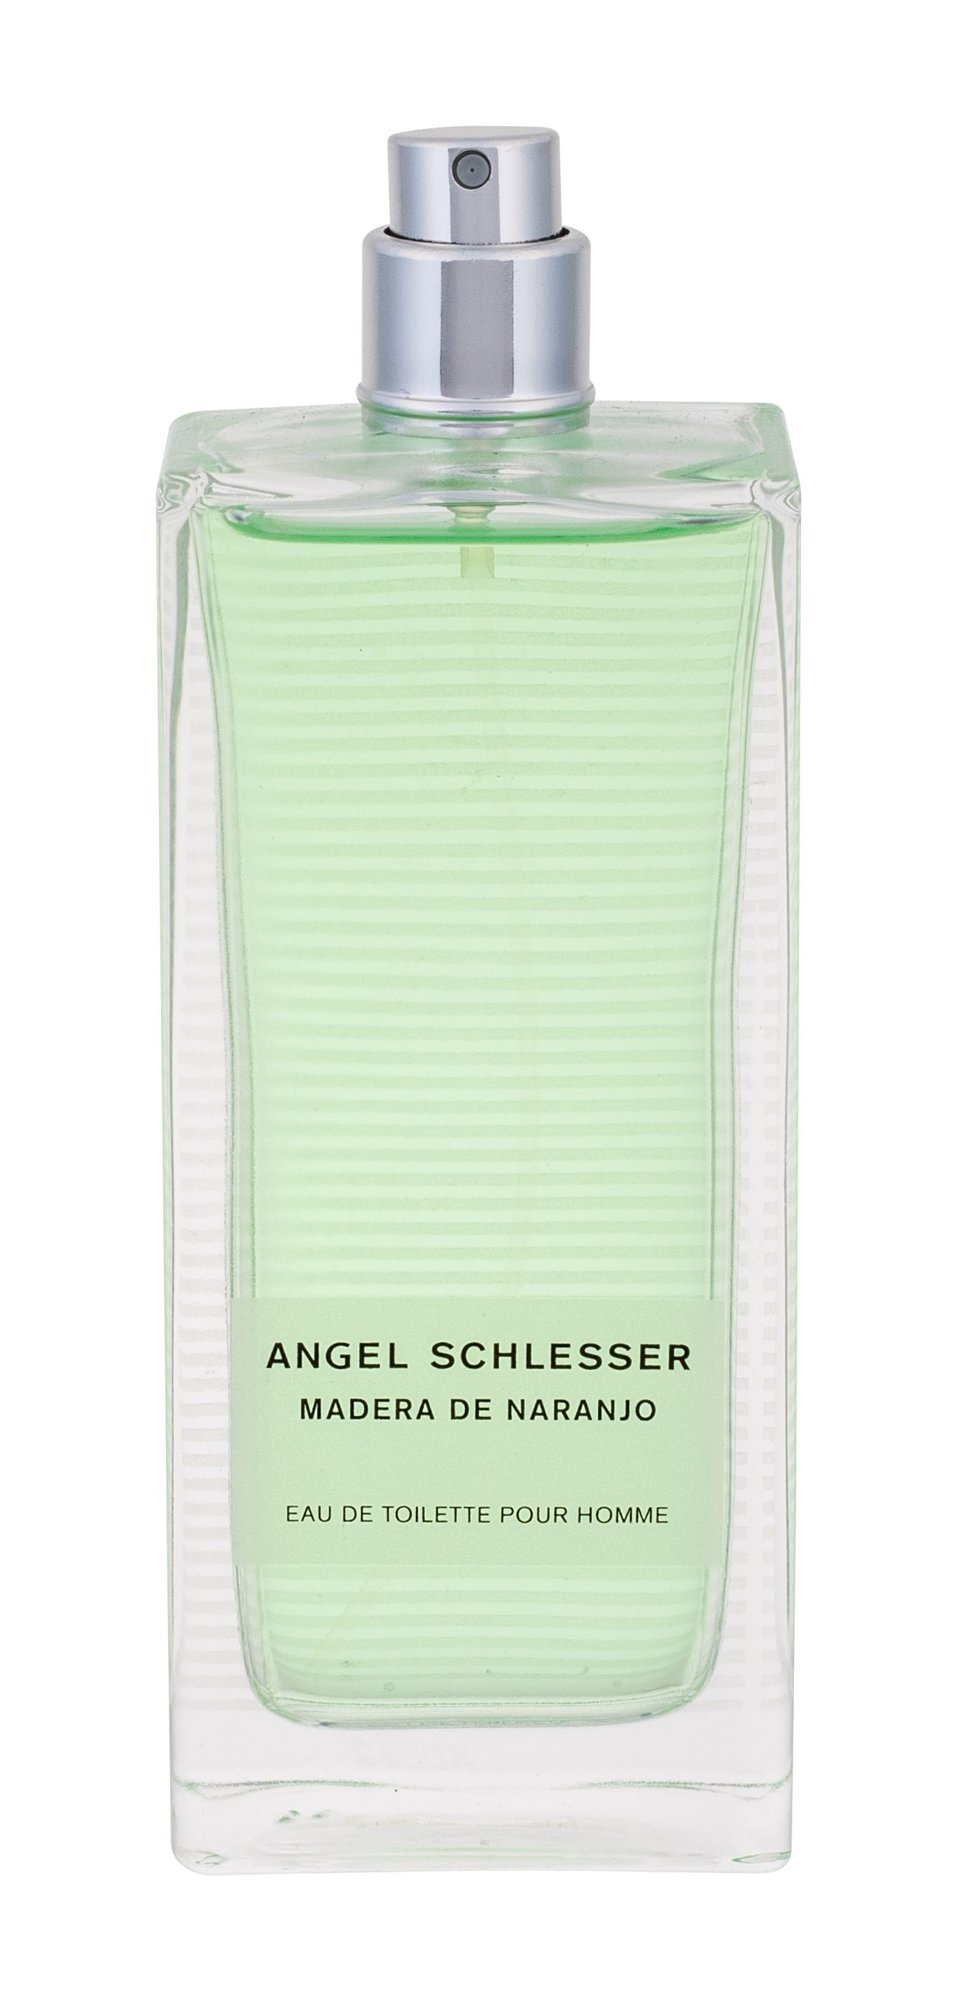 Angel Schlesser Madera de Naranjo EDT 100ml